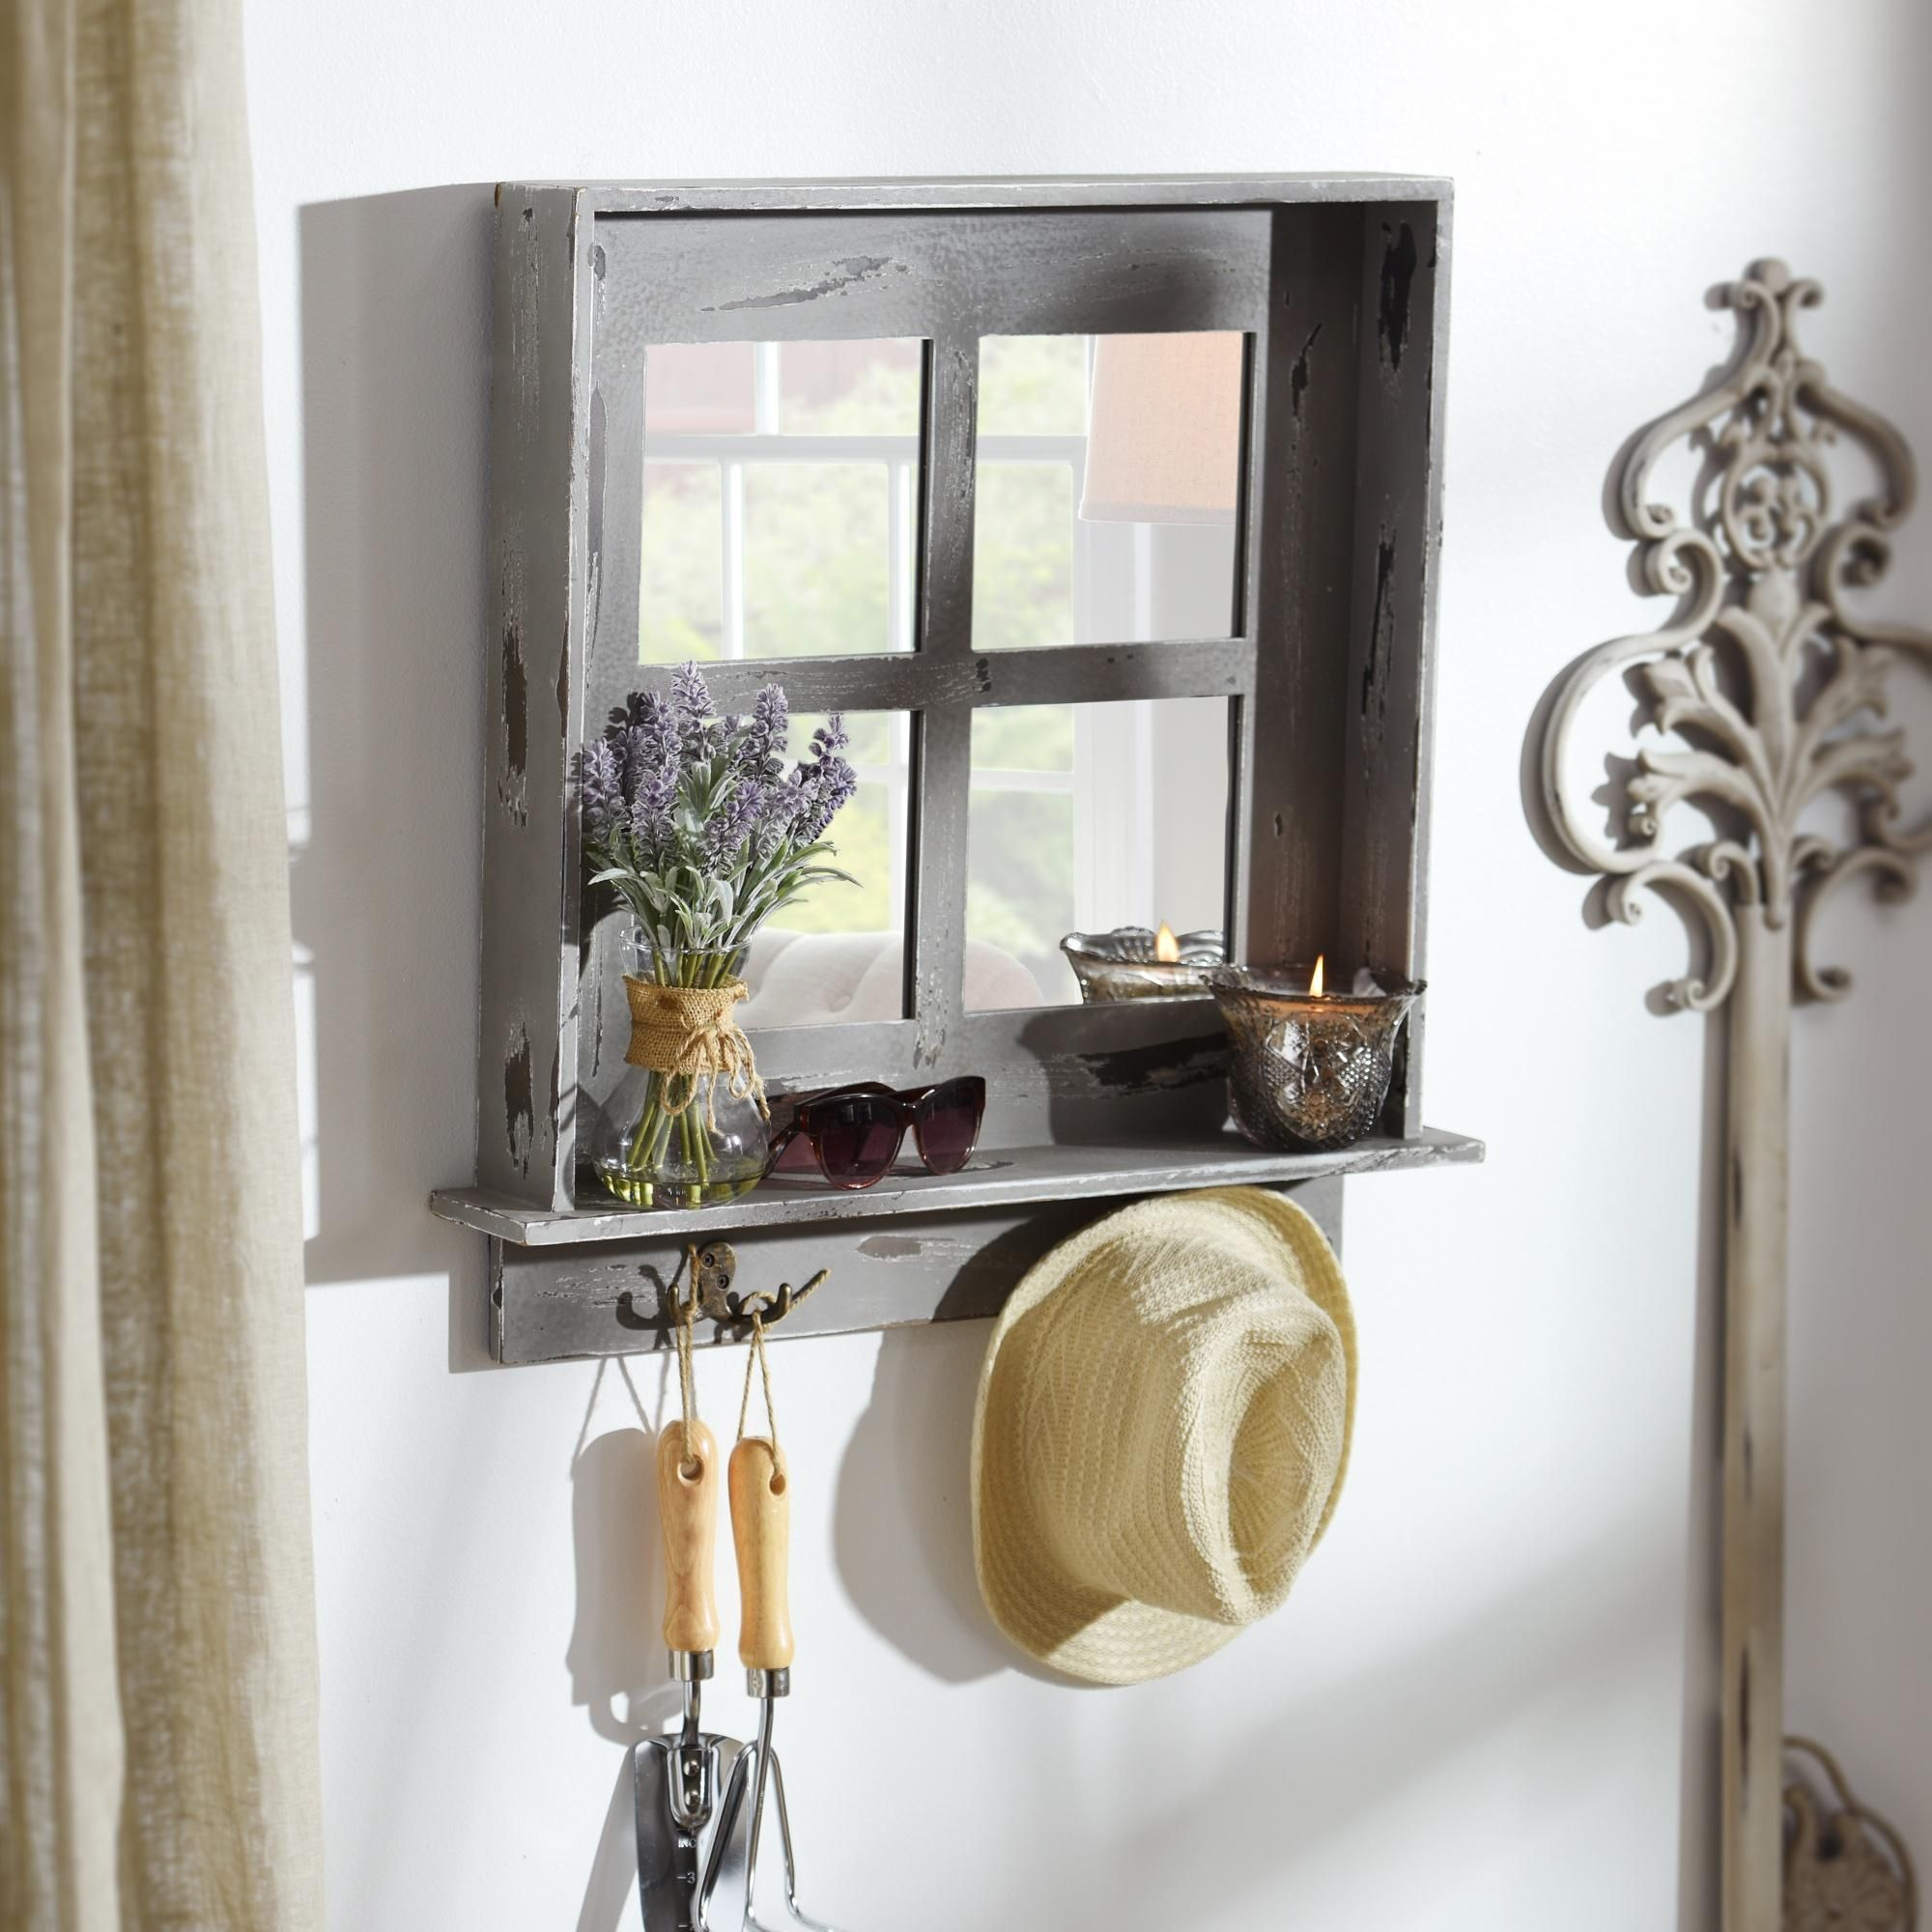 product details gray window pane wall shelf mirror with hooks in 2019 diy mirror with hooks. Black Bedroom Furniture Sets. Home Design Ideas